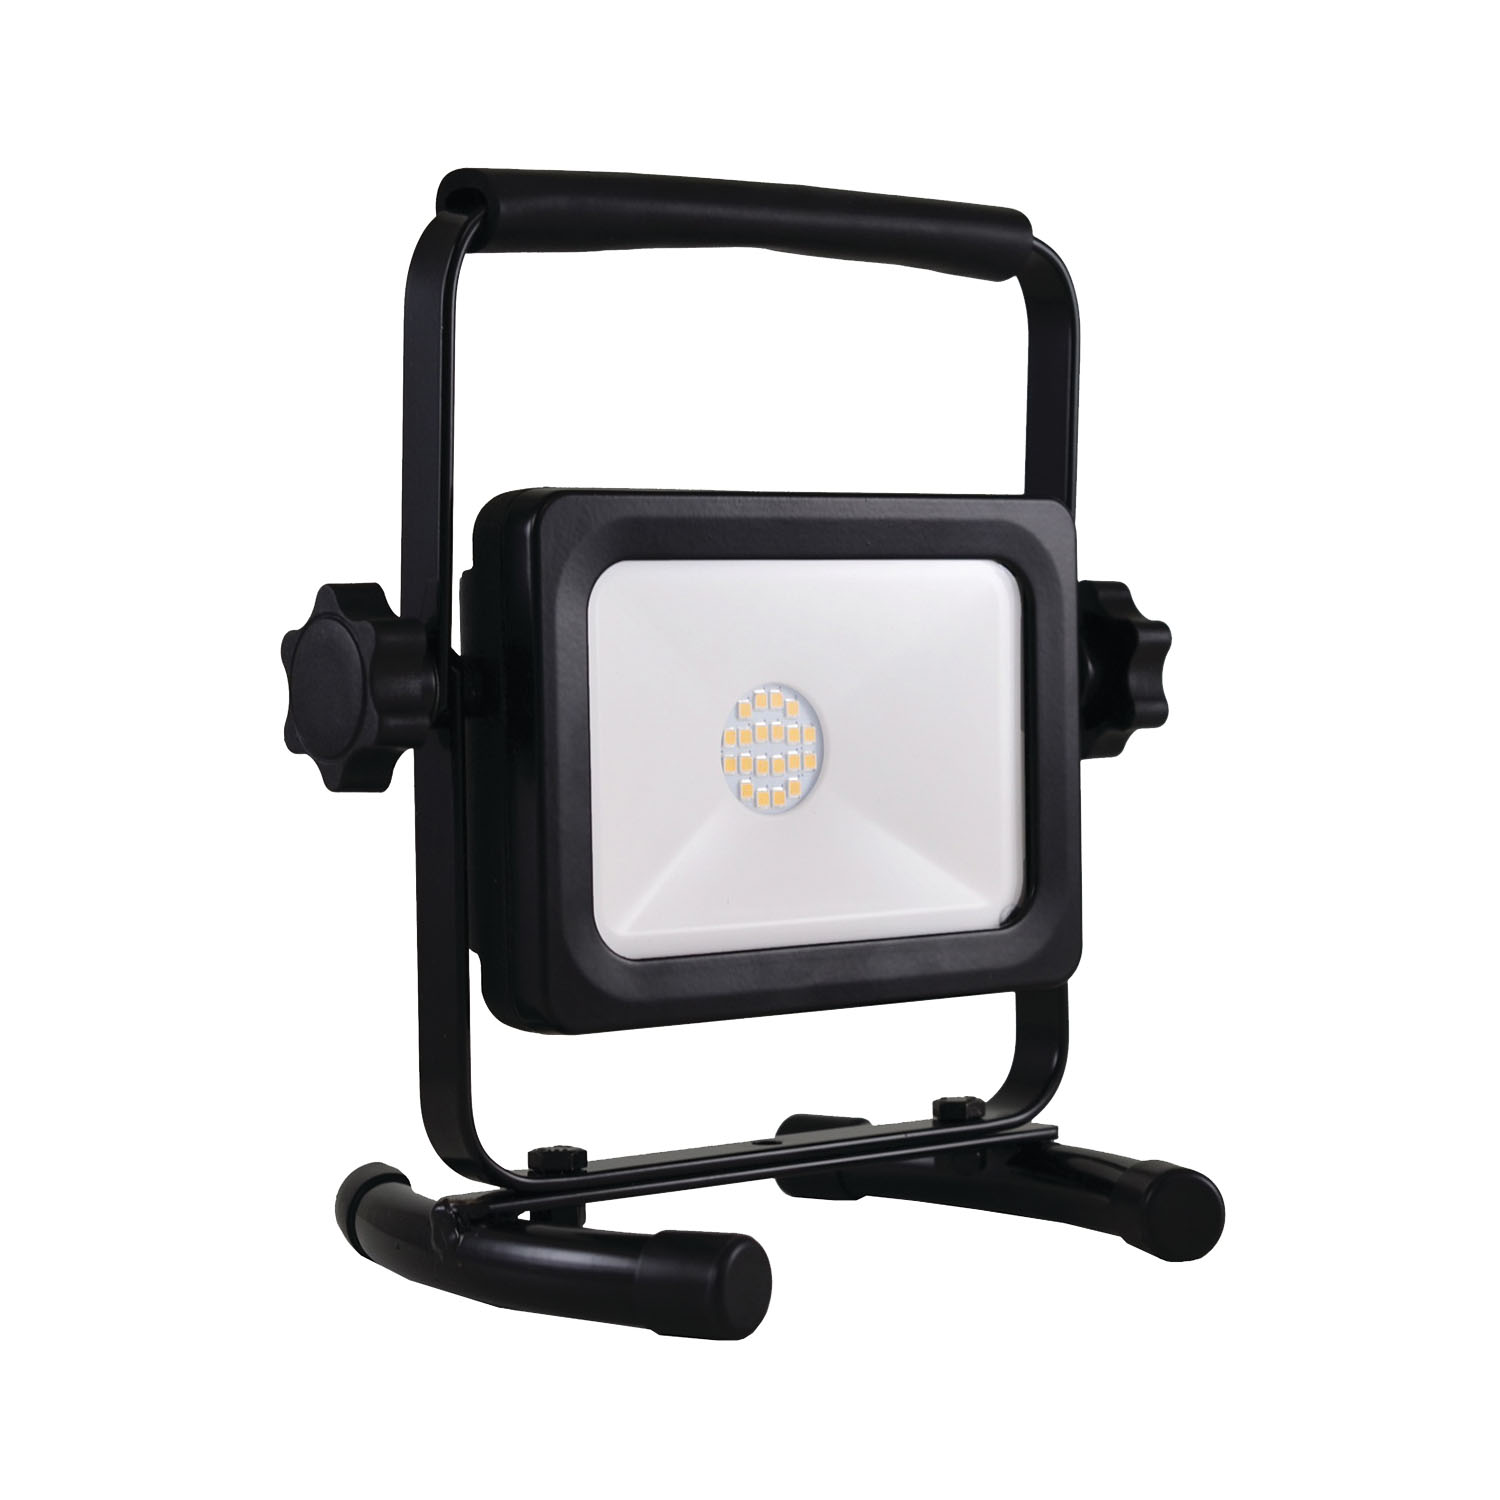 Picture of PowerZone R1500RC Work Light, LED Lamp, 1500 Lumens, 4000 K Color Temp